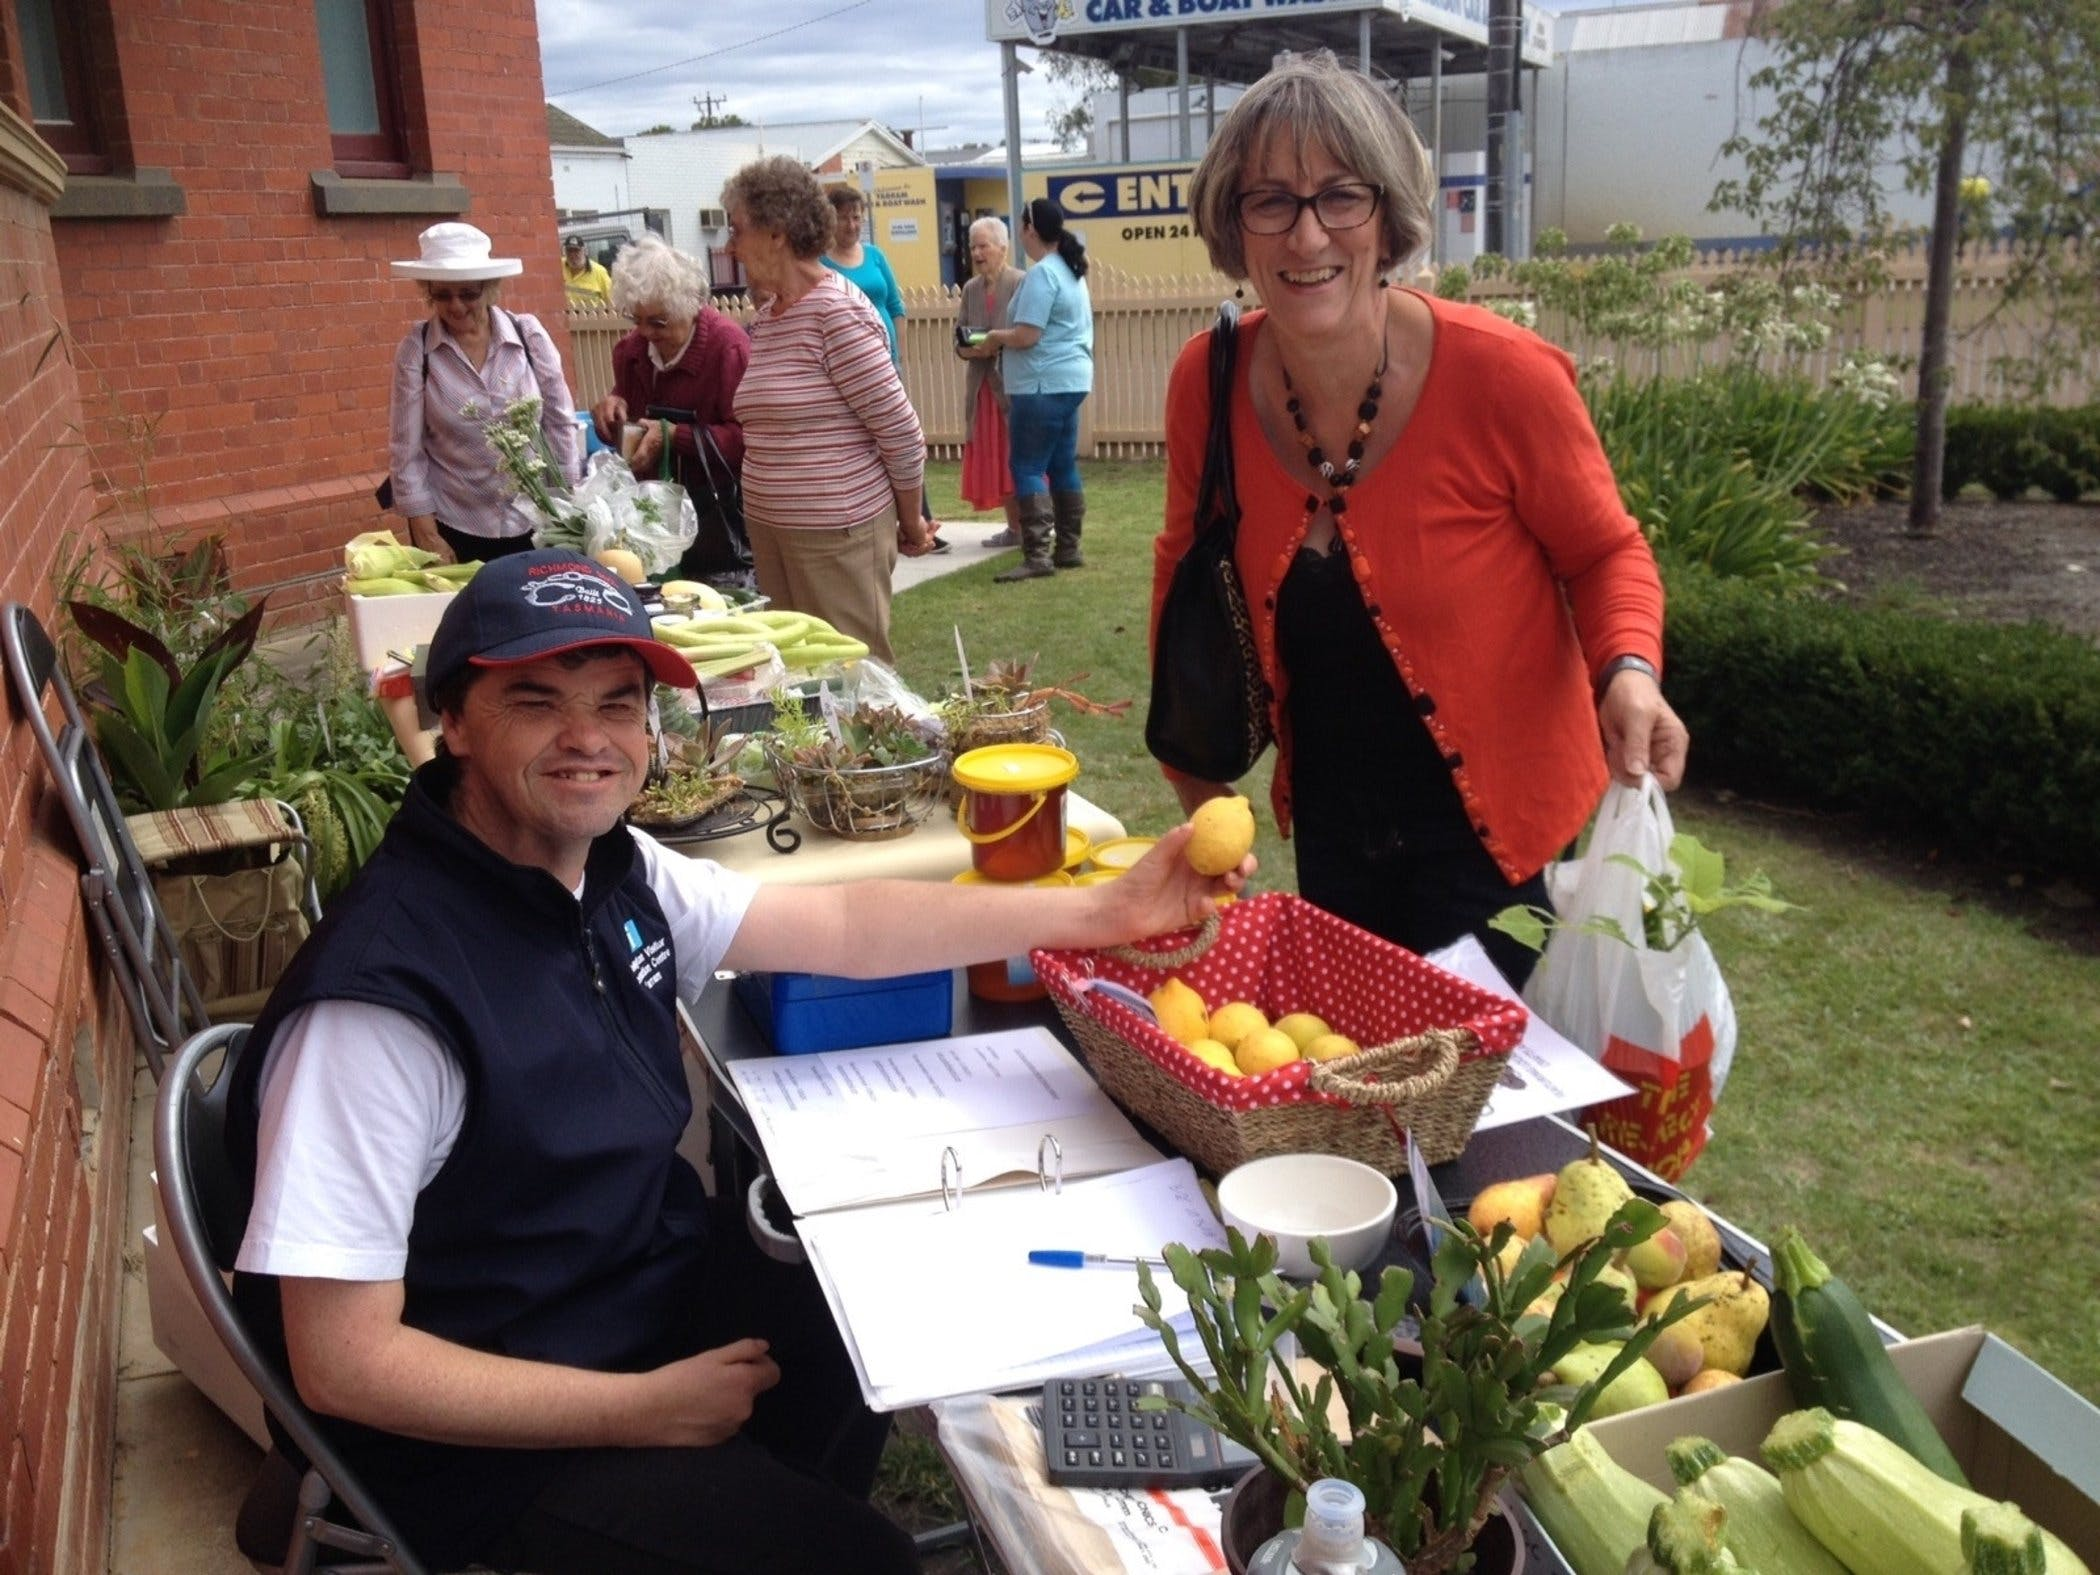 Yarram Courthouse Garden Produce Market - Accommodation Fremantle